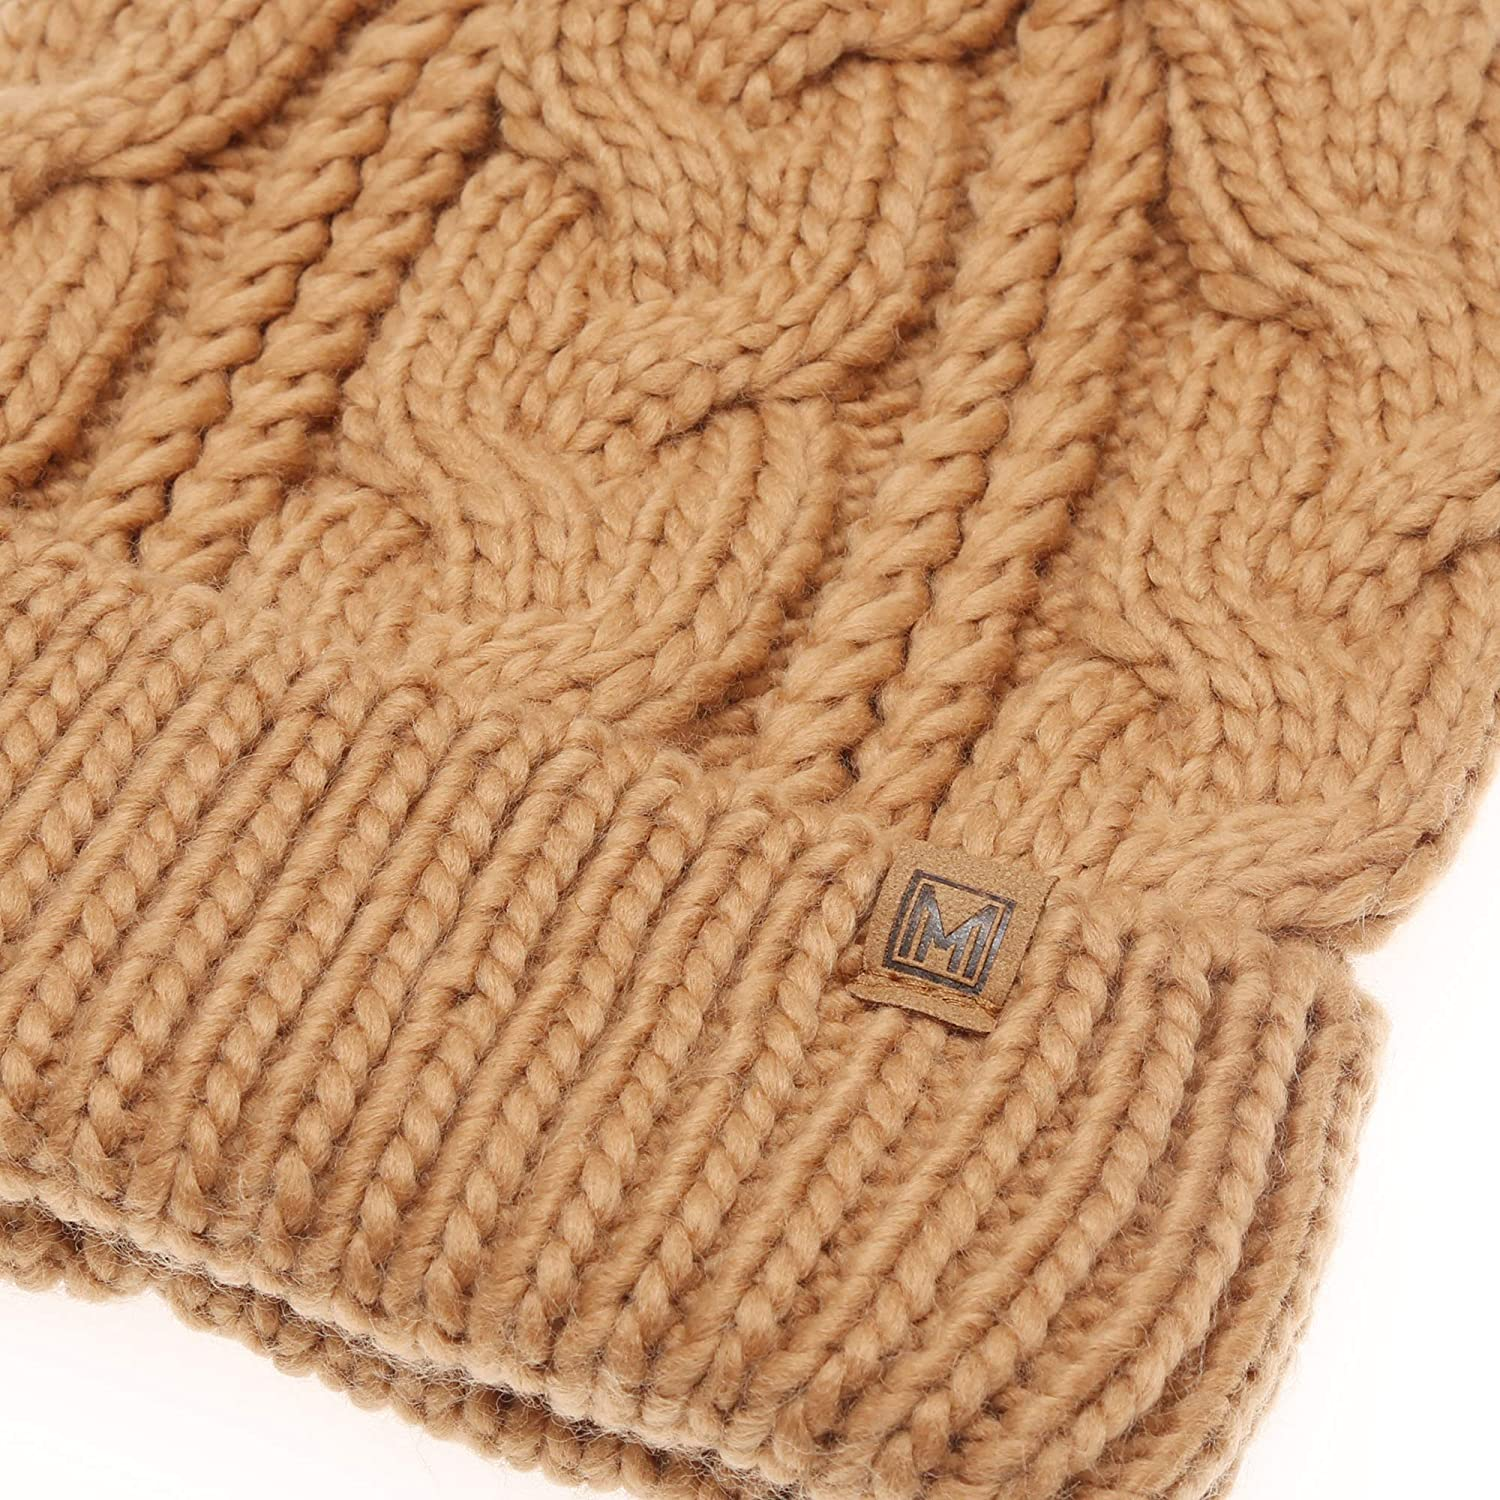 MIRMARU Kids Youth Boys /& Girls Ages 7-12 Winter Thick Stretchy Cable Knitted Pom Pom Beanie Hat